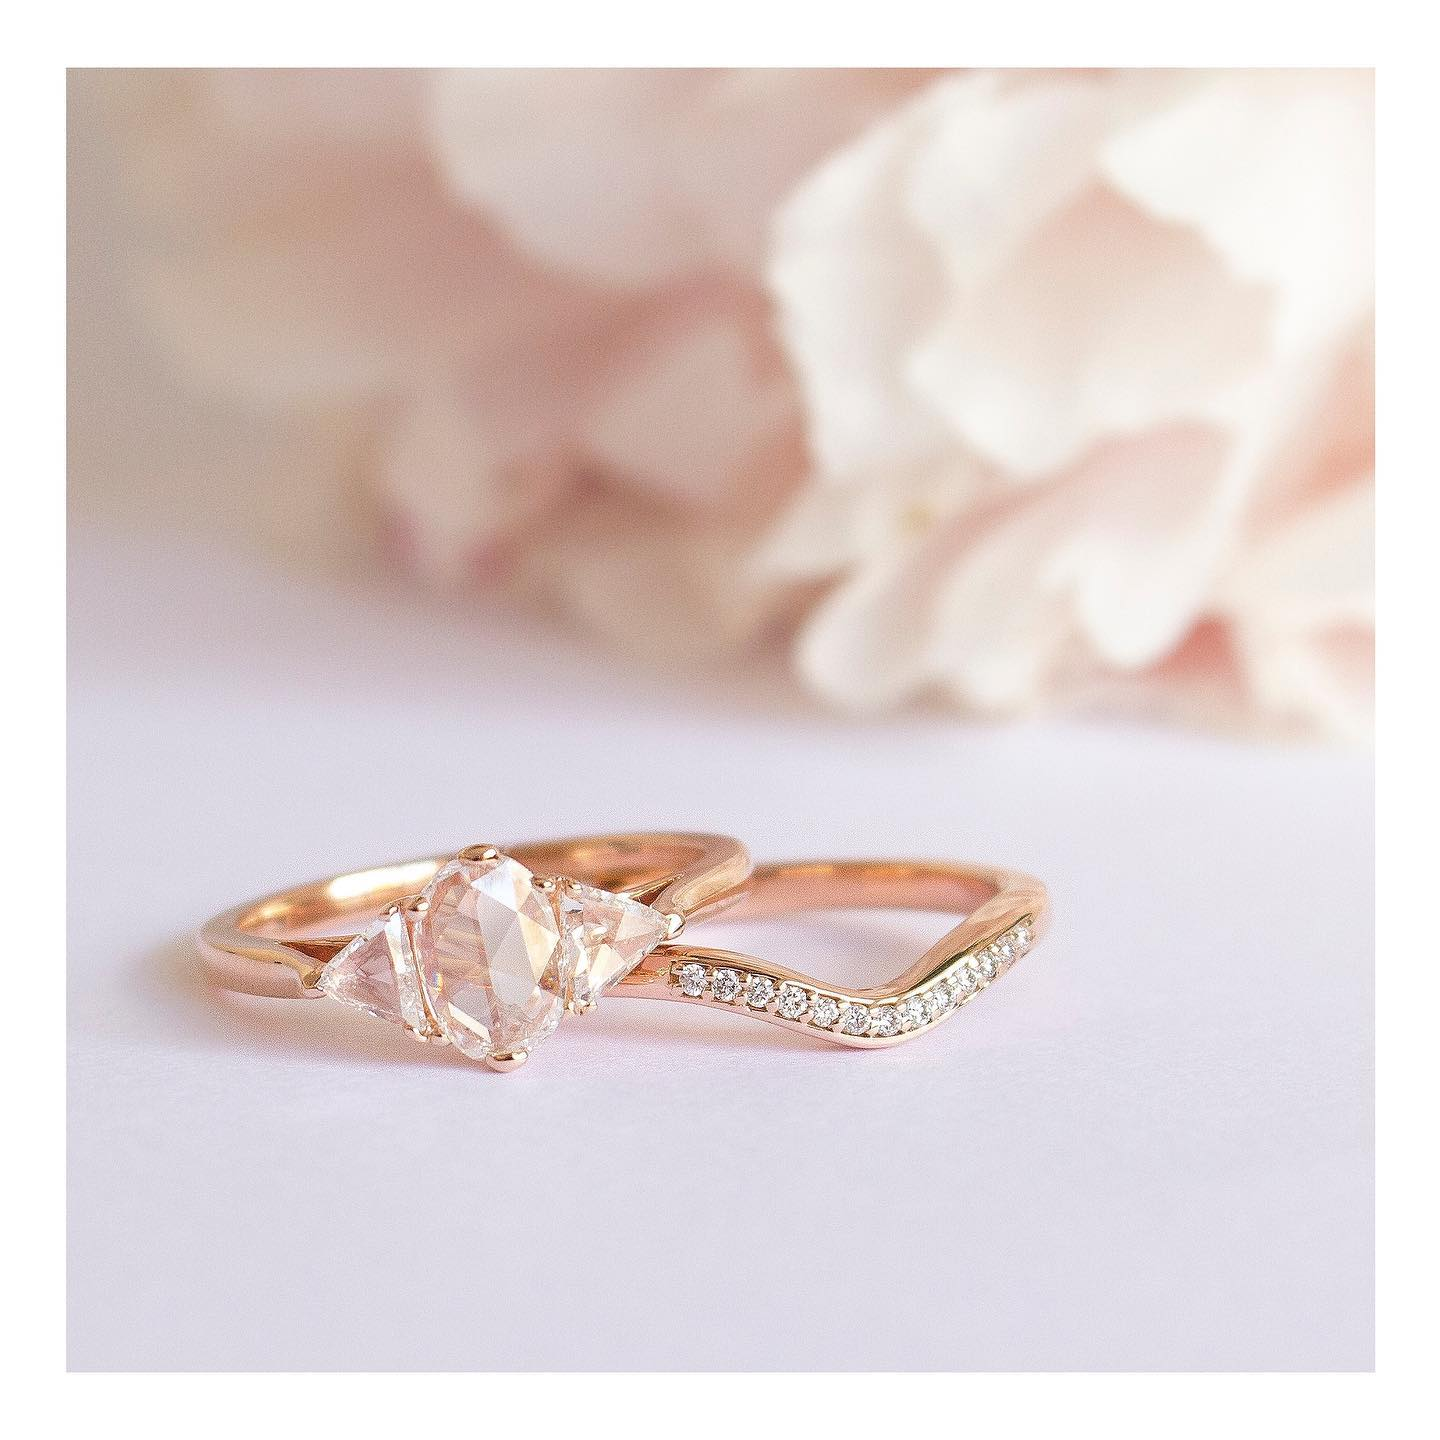 ethical engagement and wedding rings by Taylor and Hart